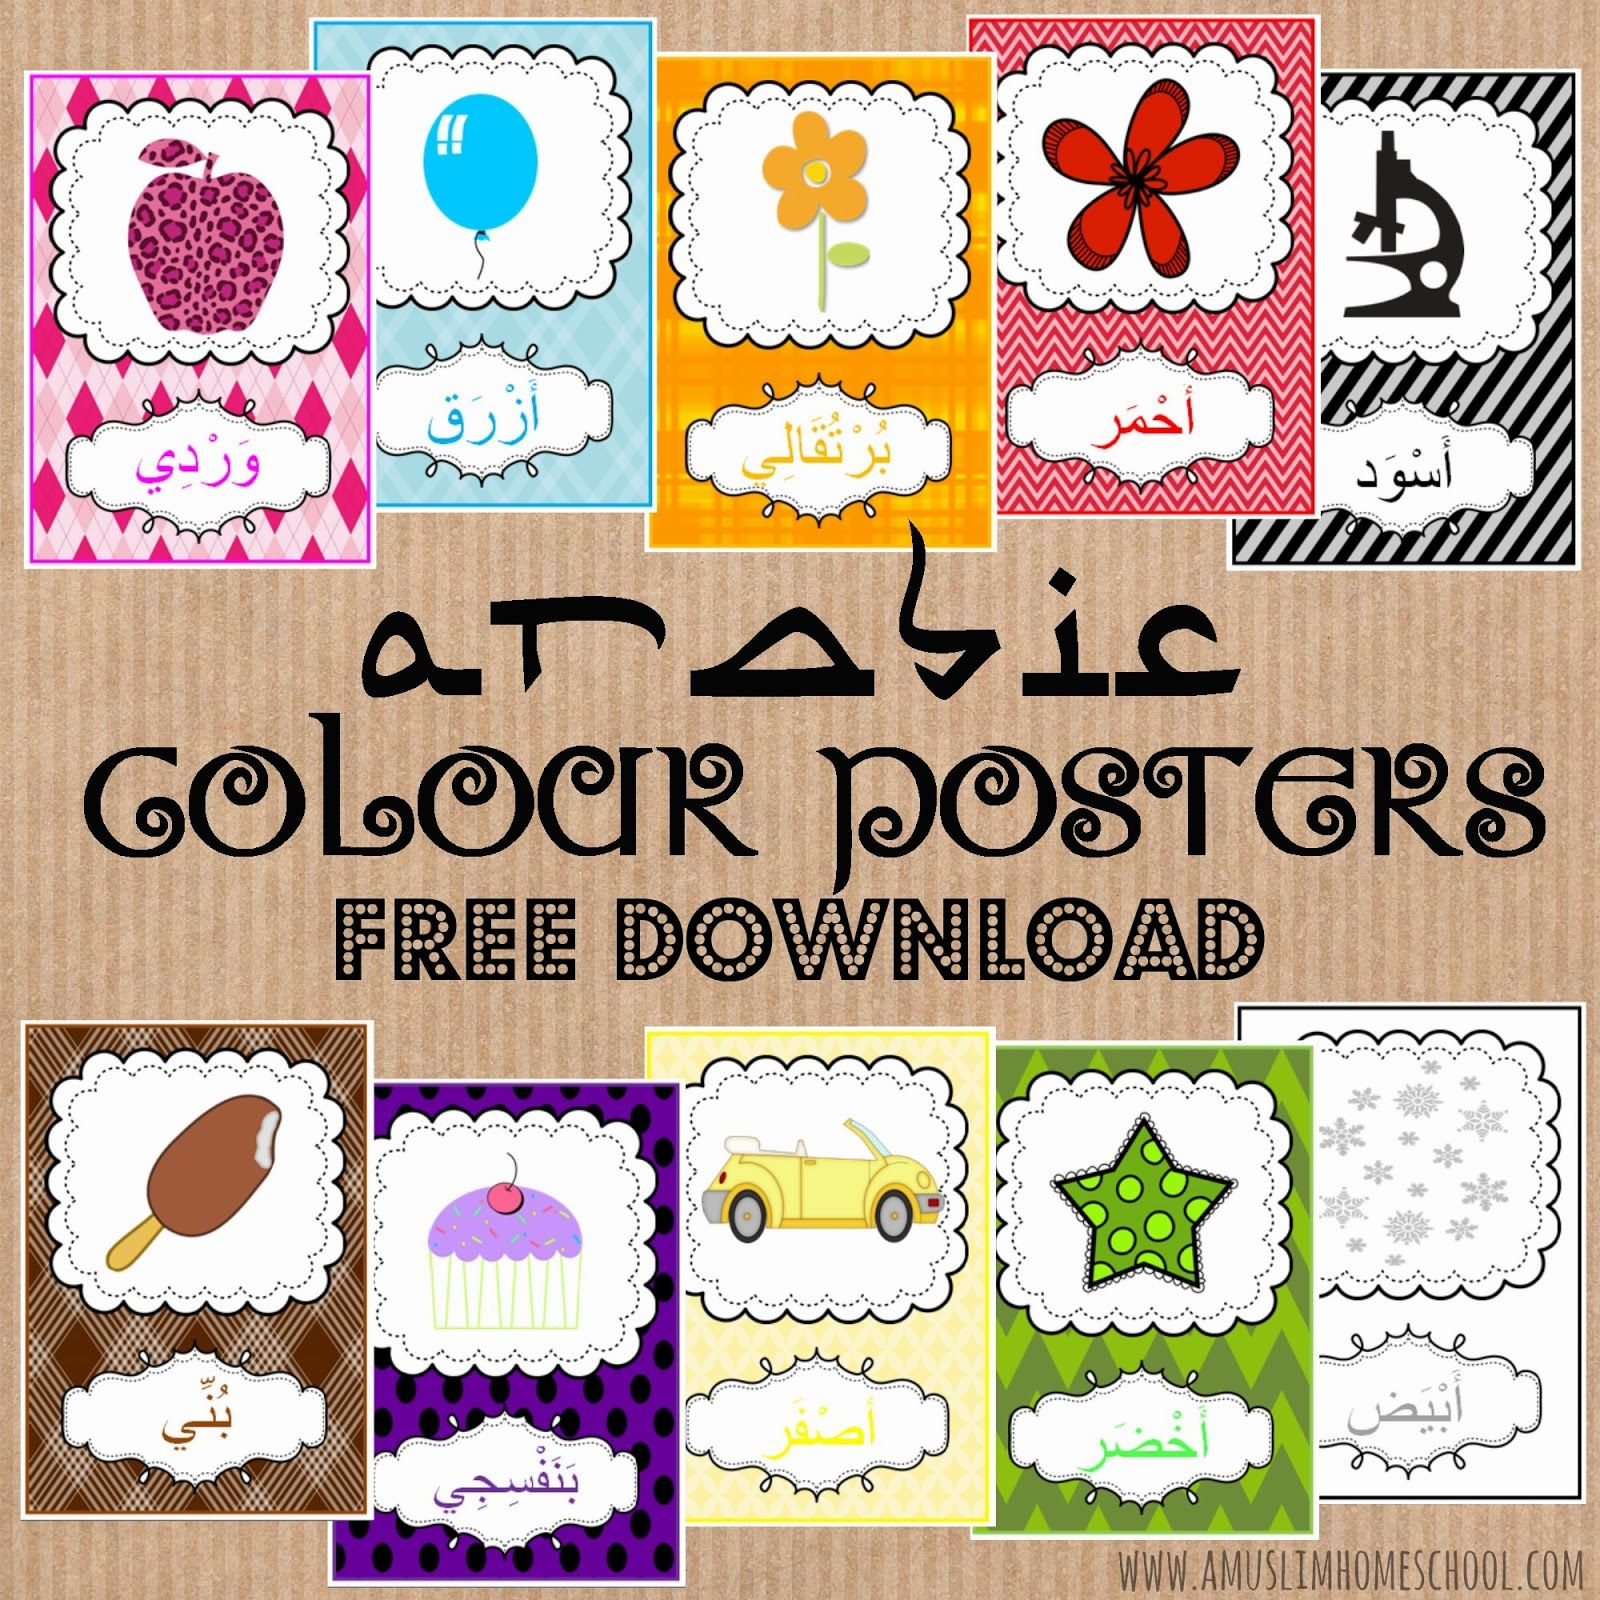 Printable arabic colour posters! Learning arabic, Color